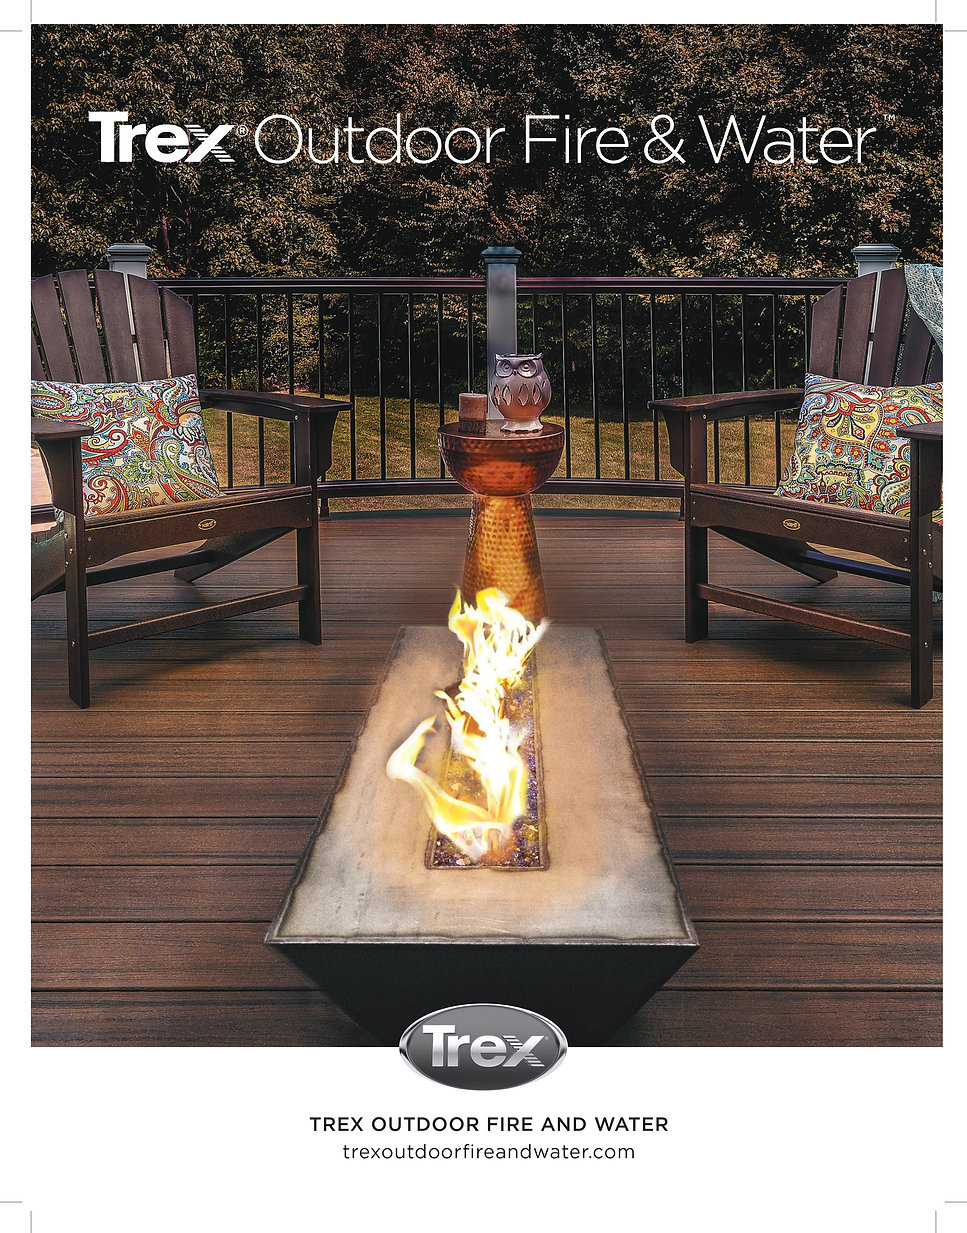 Trex fire and water 1.jpg